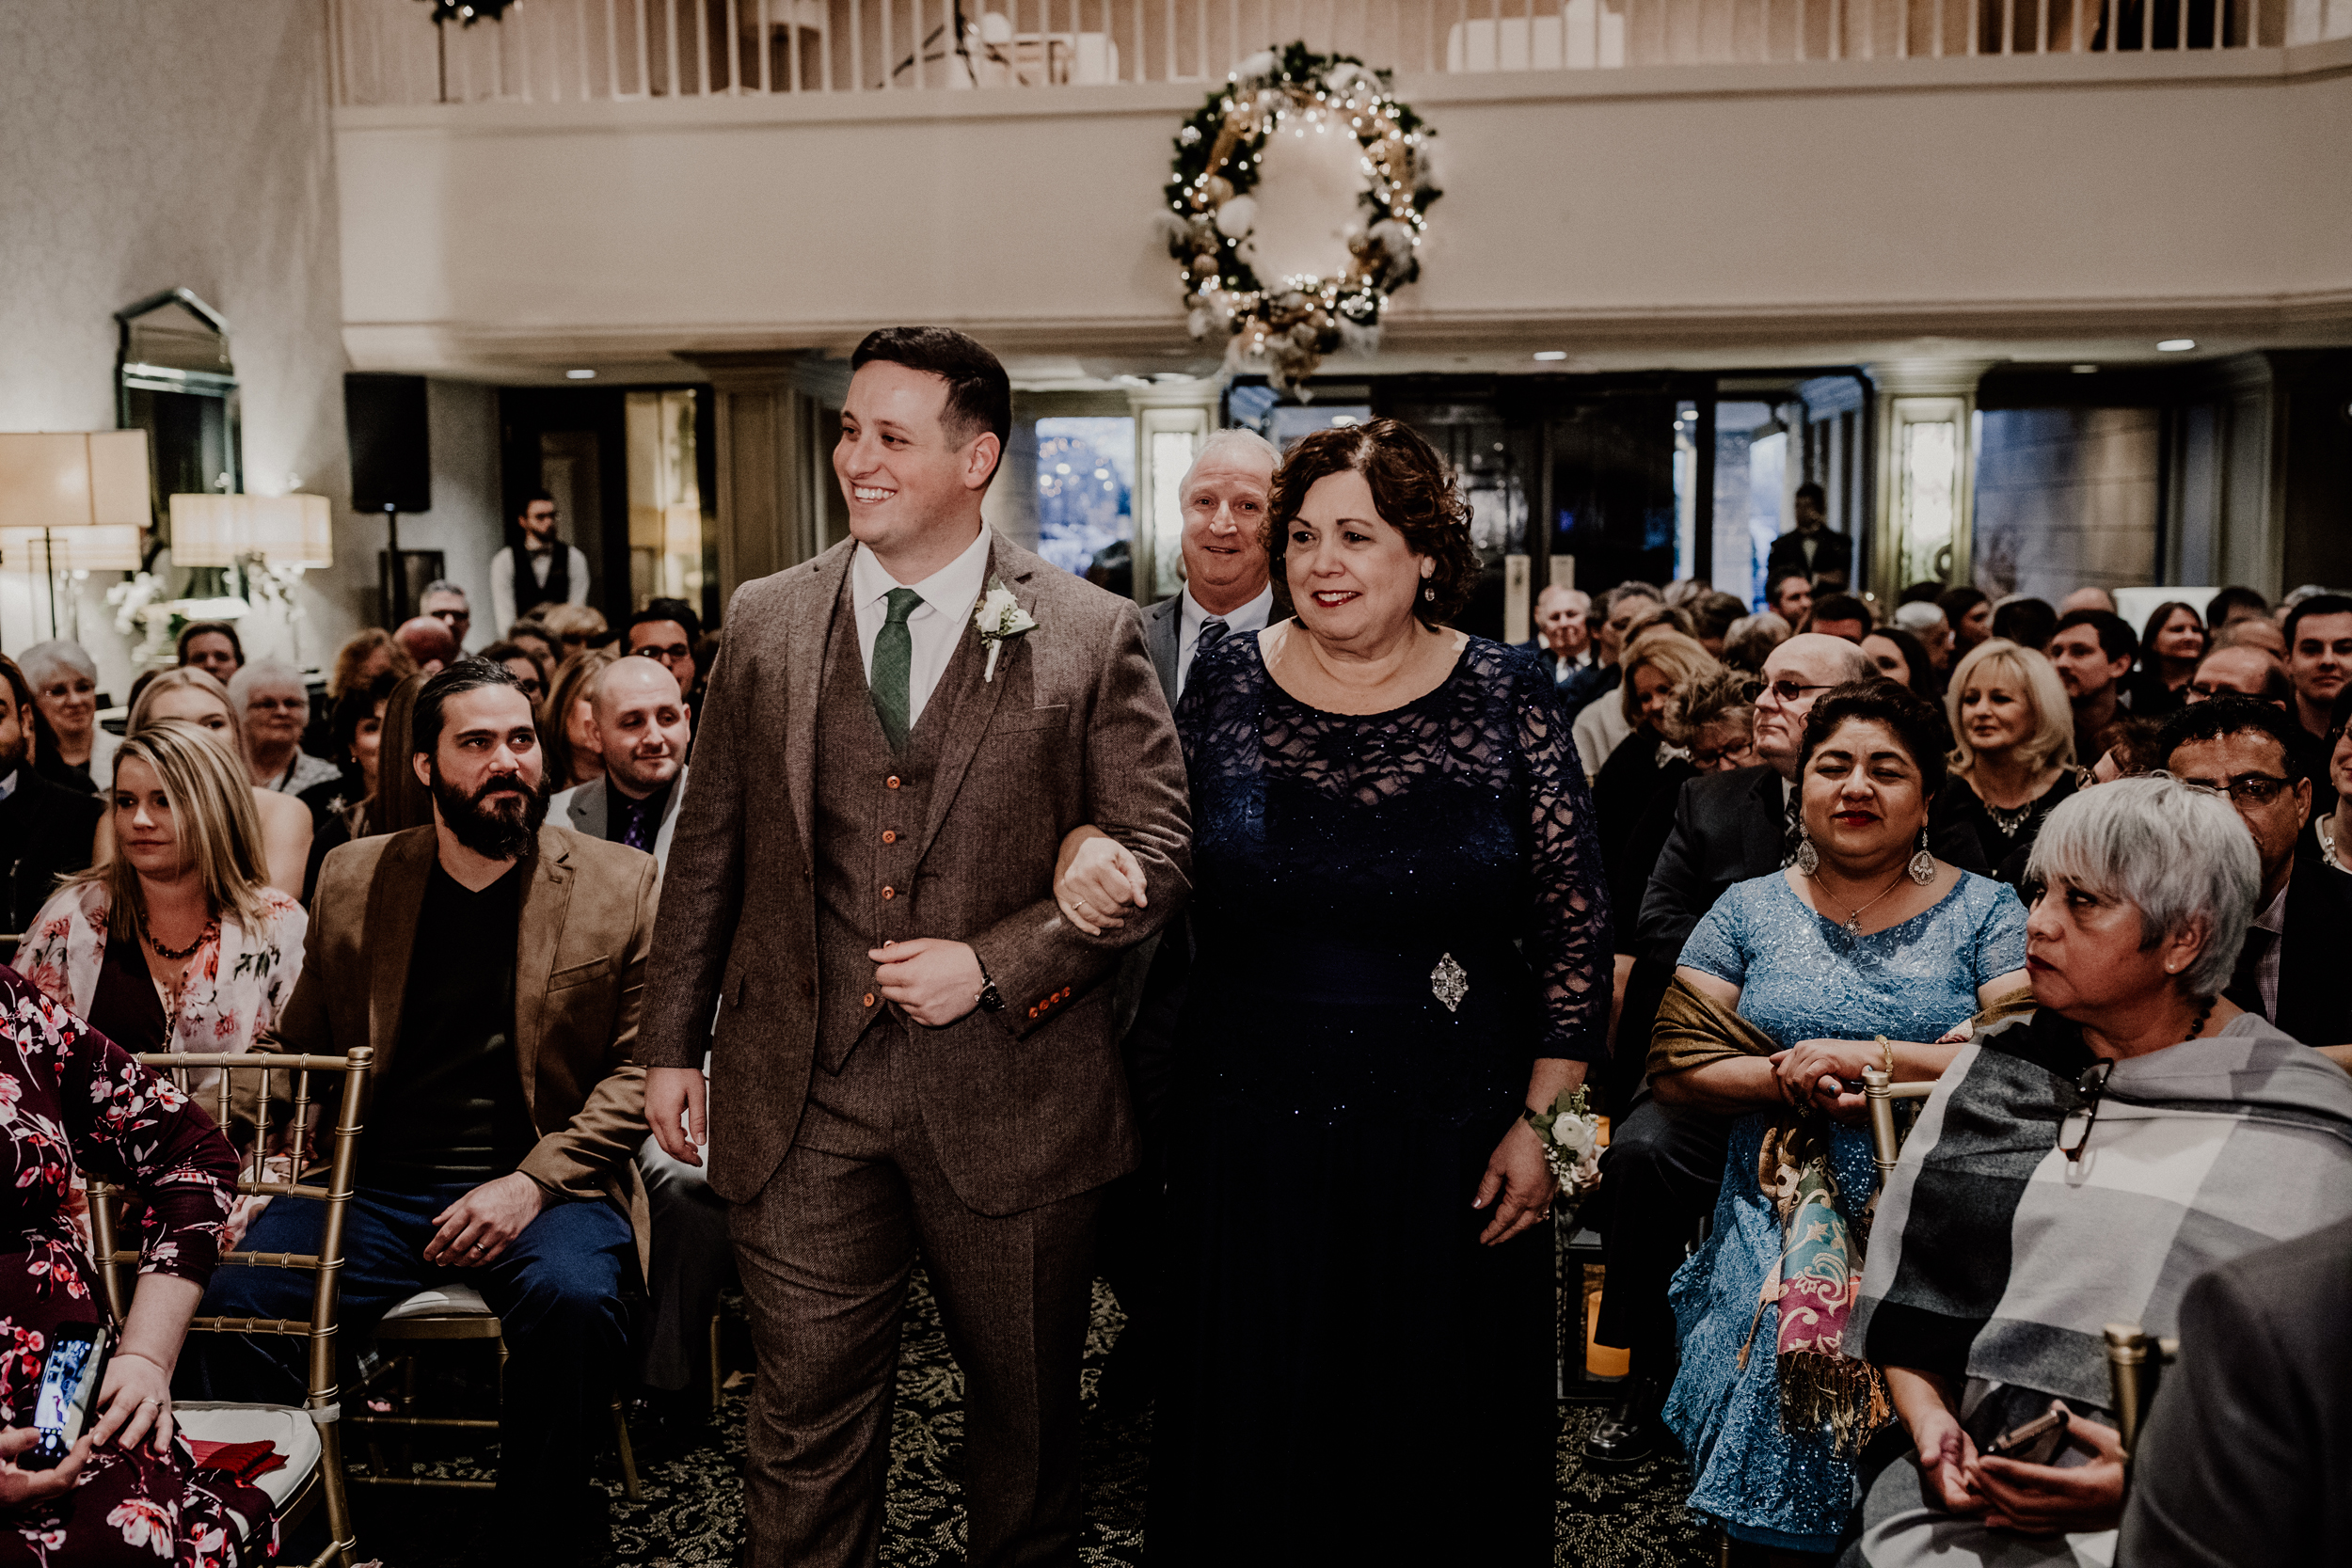 (0442) Liz + Jared (Wedding).jpg